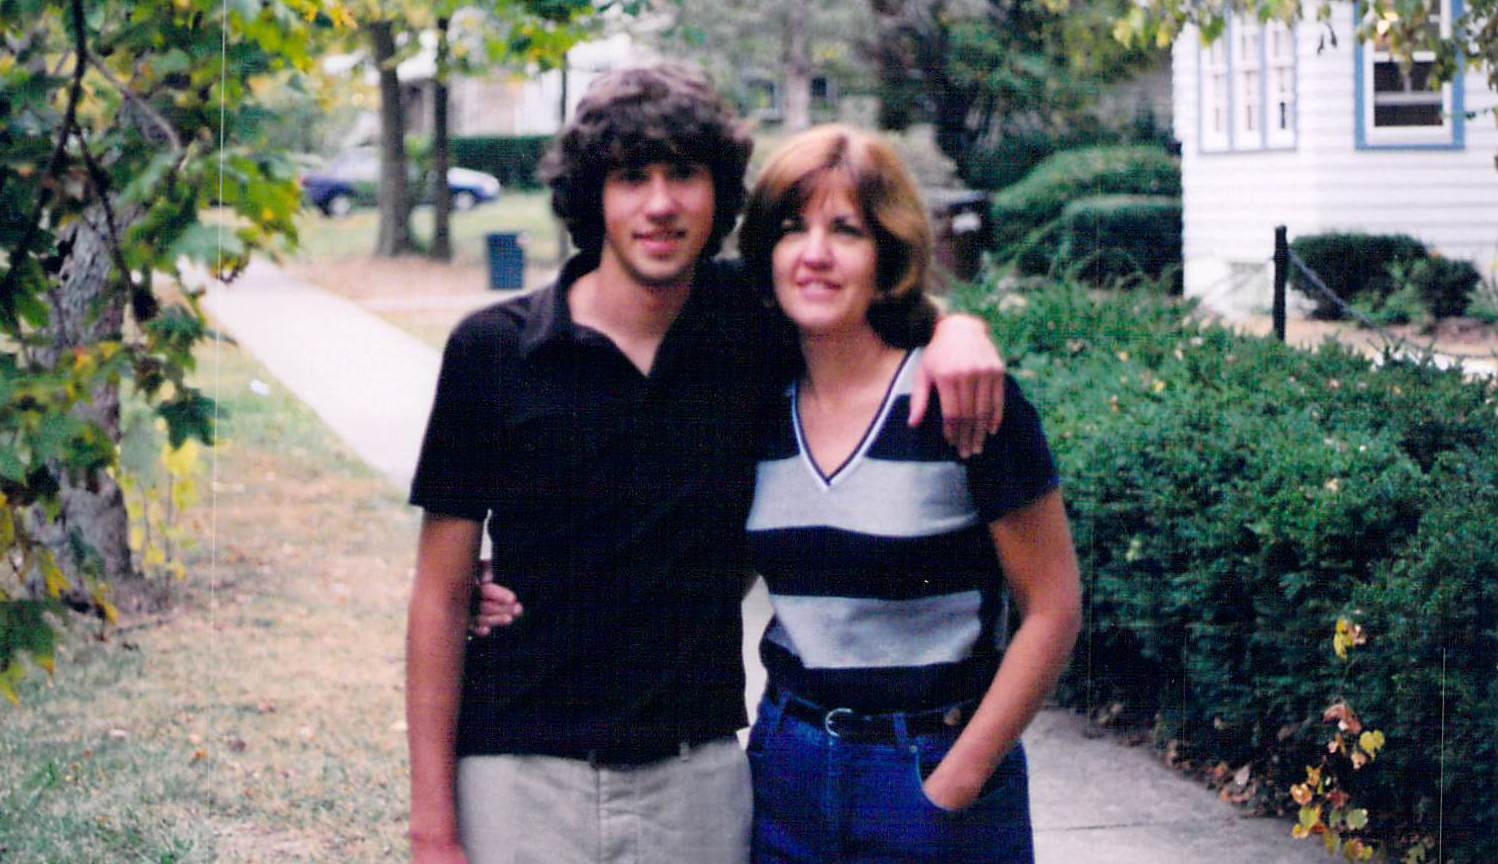 """I love you, mom."" - While Jason was attending college, he would quiet the crowds down, and stand on a chair and shout ""I Love My Mom."" Not many college kids would do this. His girlfriend Jenn suggested we start the ""I Love My Mom"" campaign. While cleaning out Jason's room, his mom Dolly came across some long forgotten items. It was while packing things up that she received a clear message from him to ""Play The Tape."" At first she did not know what this meant, but did find a tape marked Children's Christmas Songs. The message came again ""Play The Tape."" She could not believe what she heard next. It was her young boys talking and playing. Included was Jason's little voice saying, ""I LOVE YOU MOM!"""